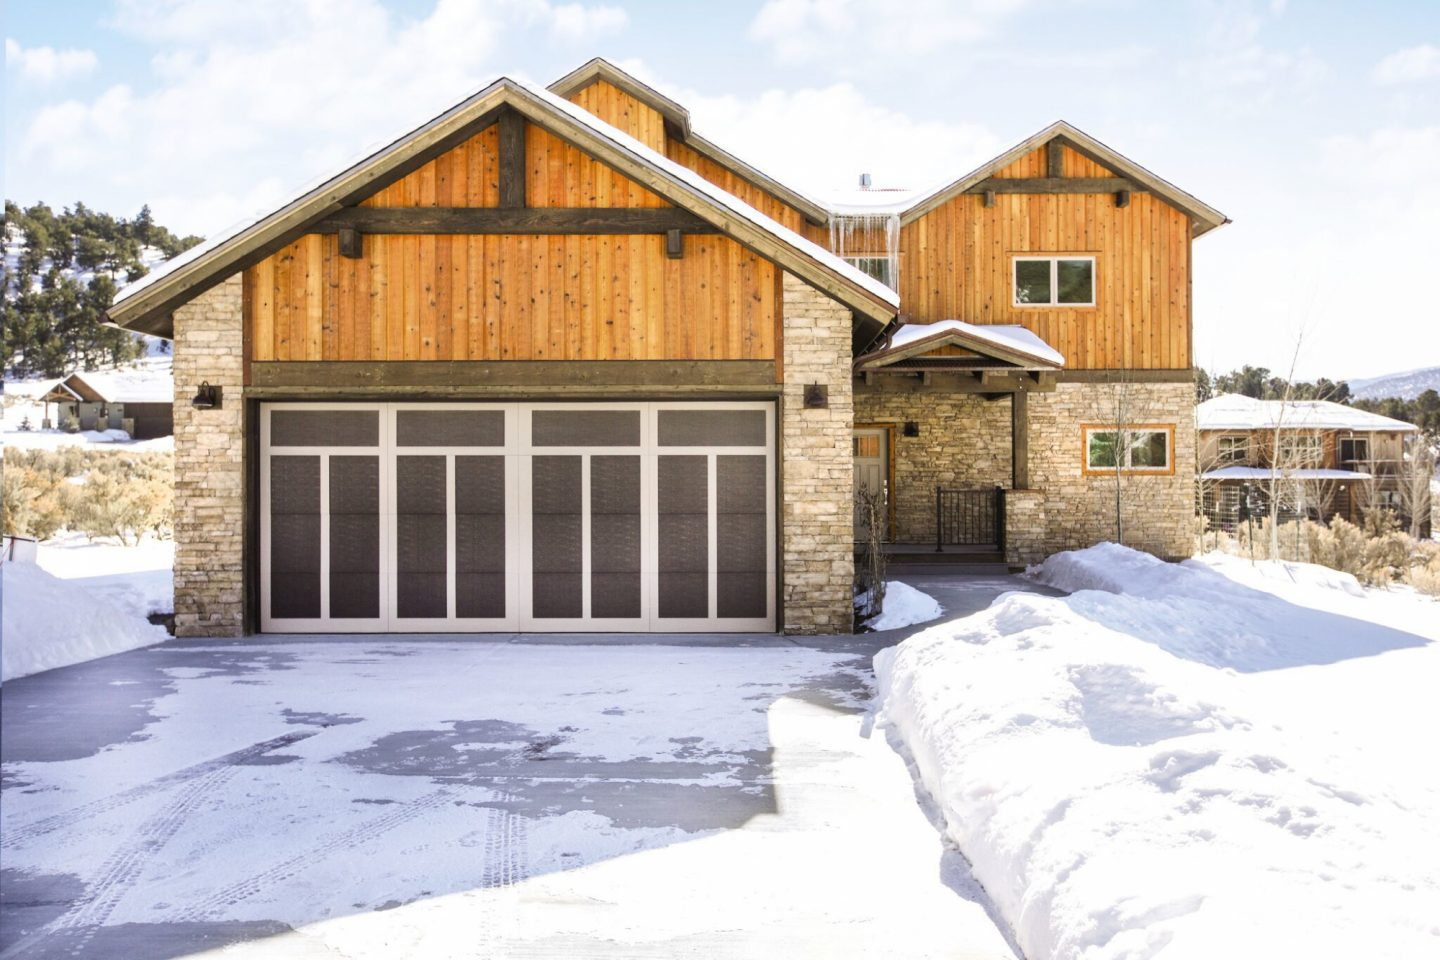 cabin-style-home-with-dark-wood-garage-door-in-the-winter.jpg?mtime=20181123162328#asset:10857:c1440xauto